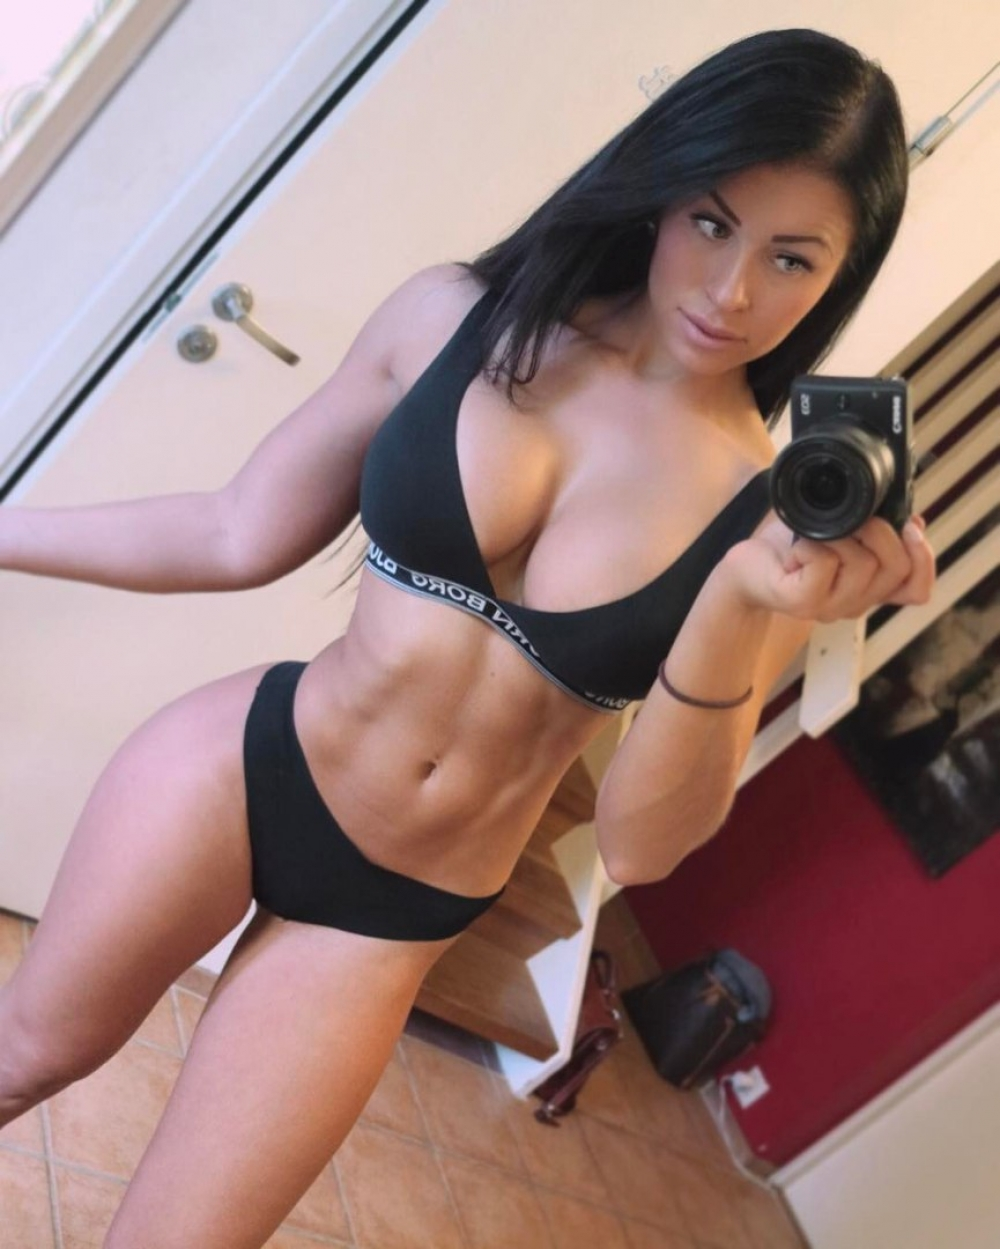 nice hot boobs sunshine body sexy   best hot selfies